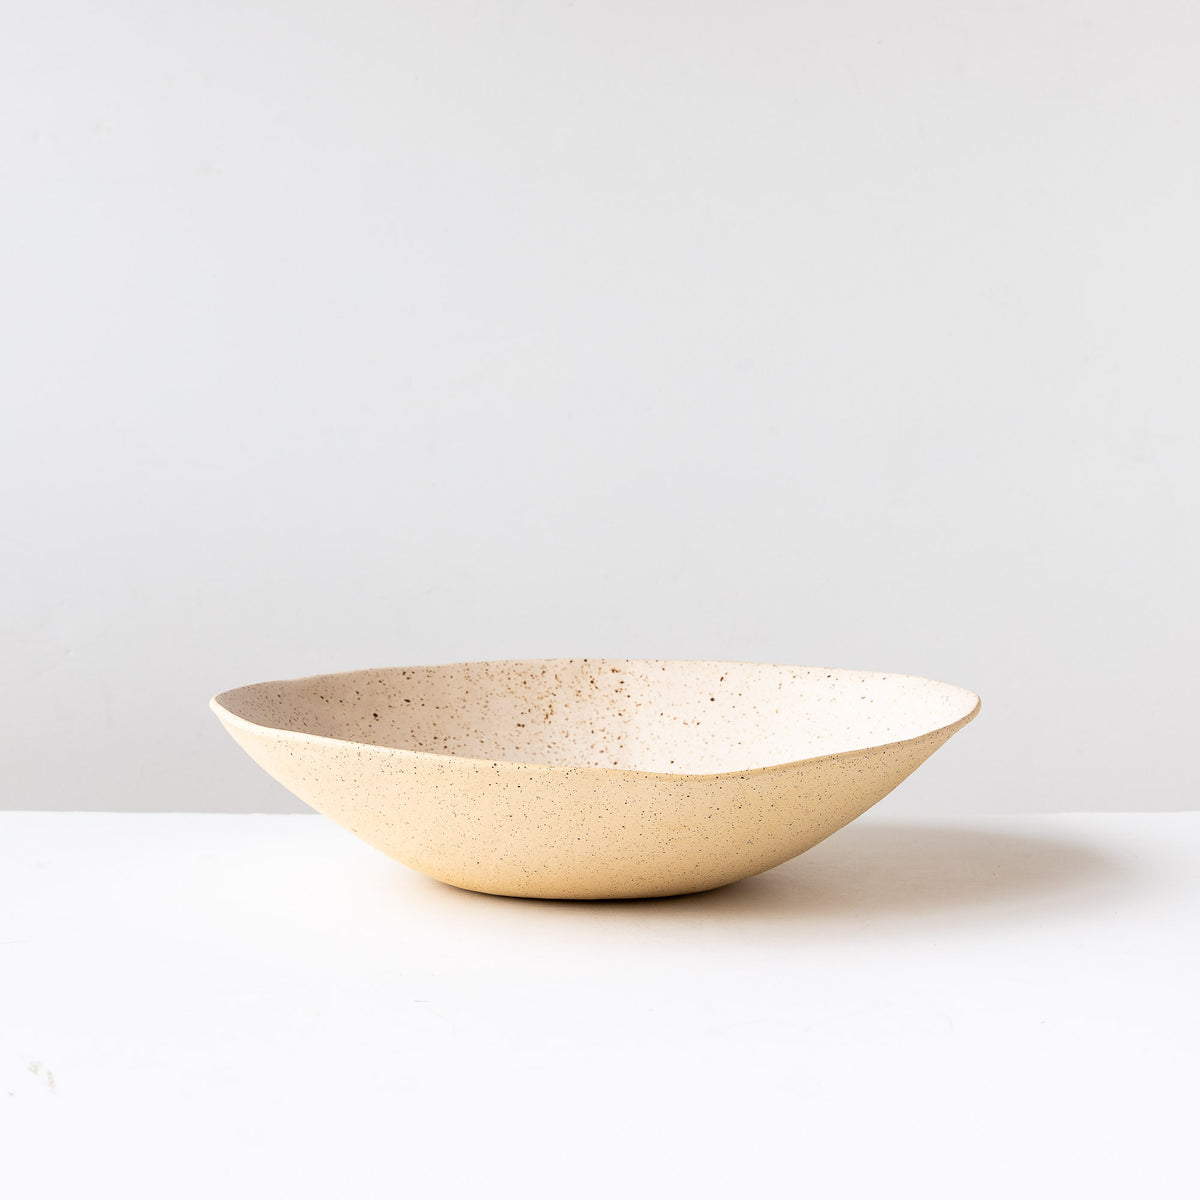 Freckled Off-White - Handcrafted Large Freckled Stoneware Fruit Bowl - Sold by Chic & Basta